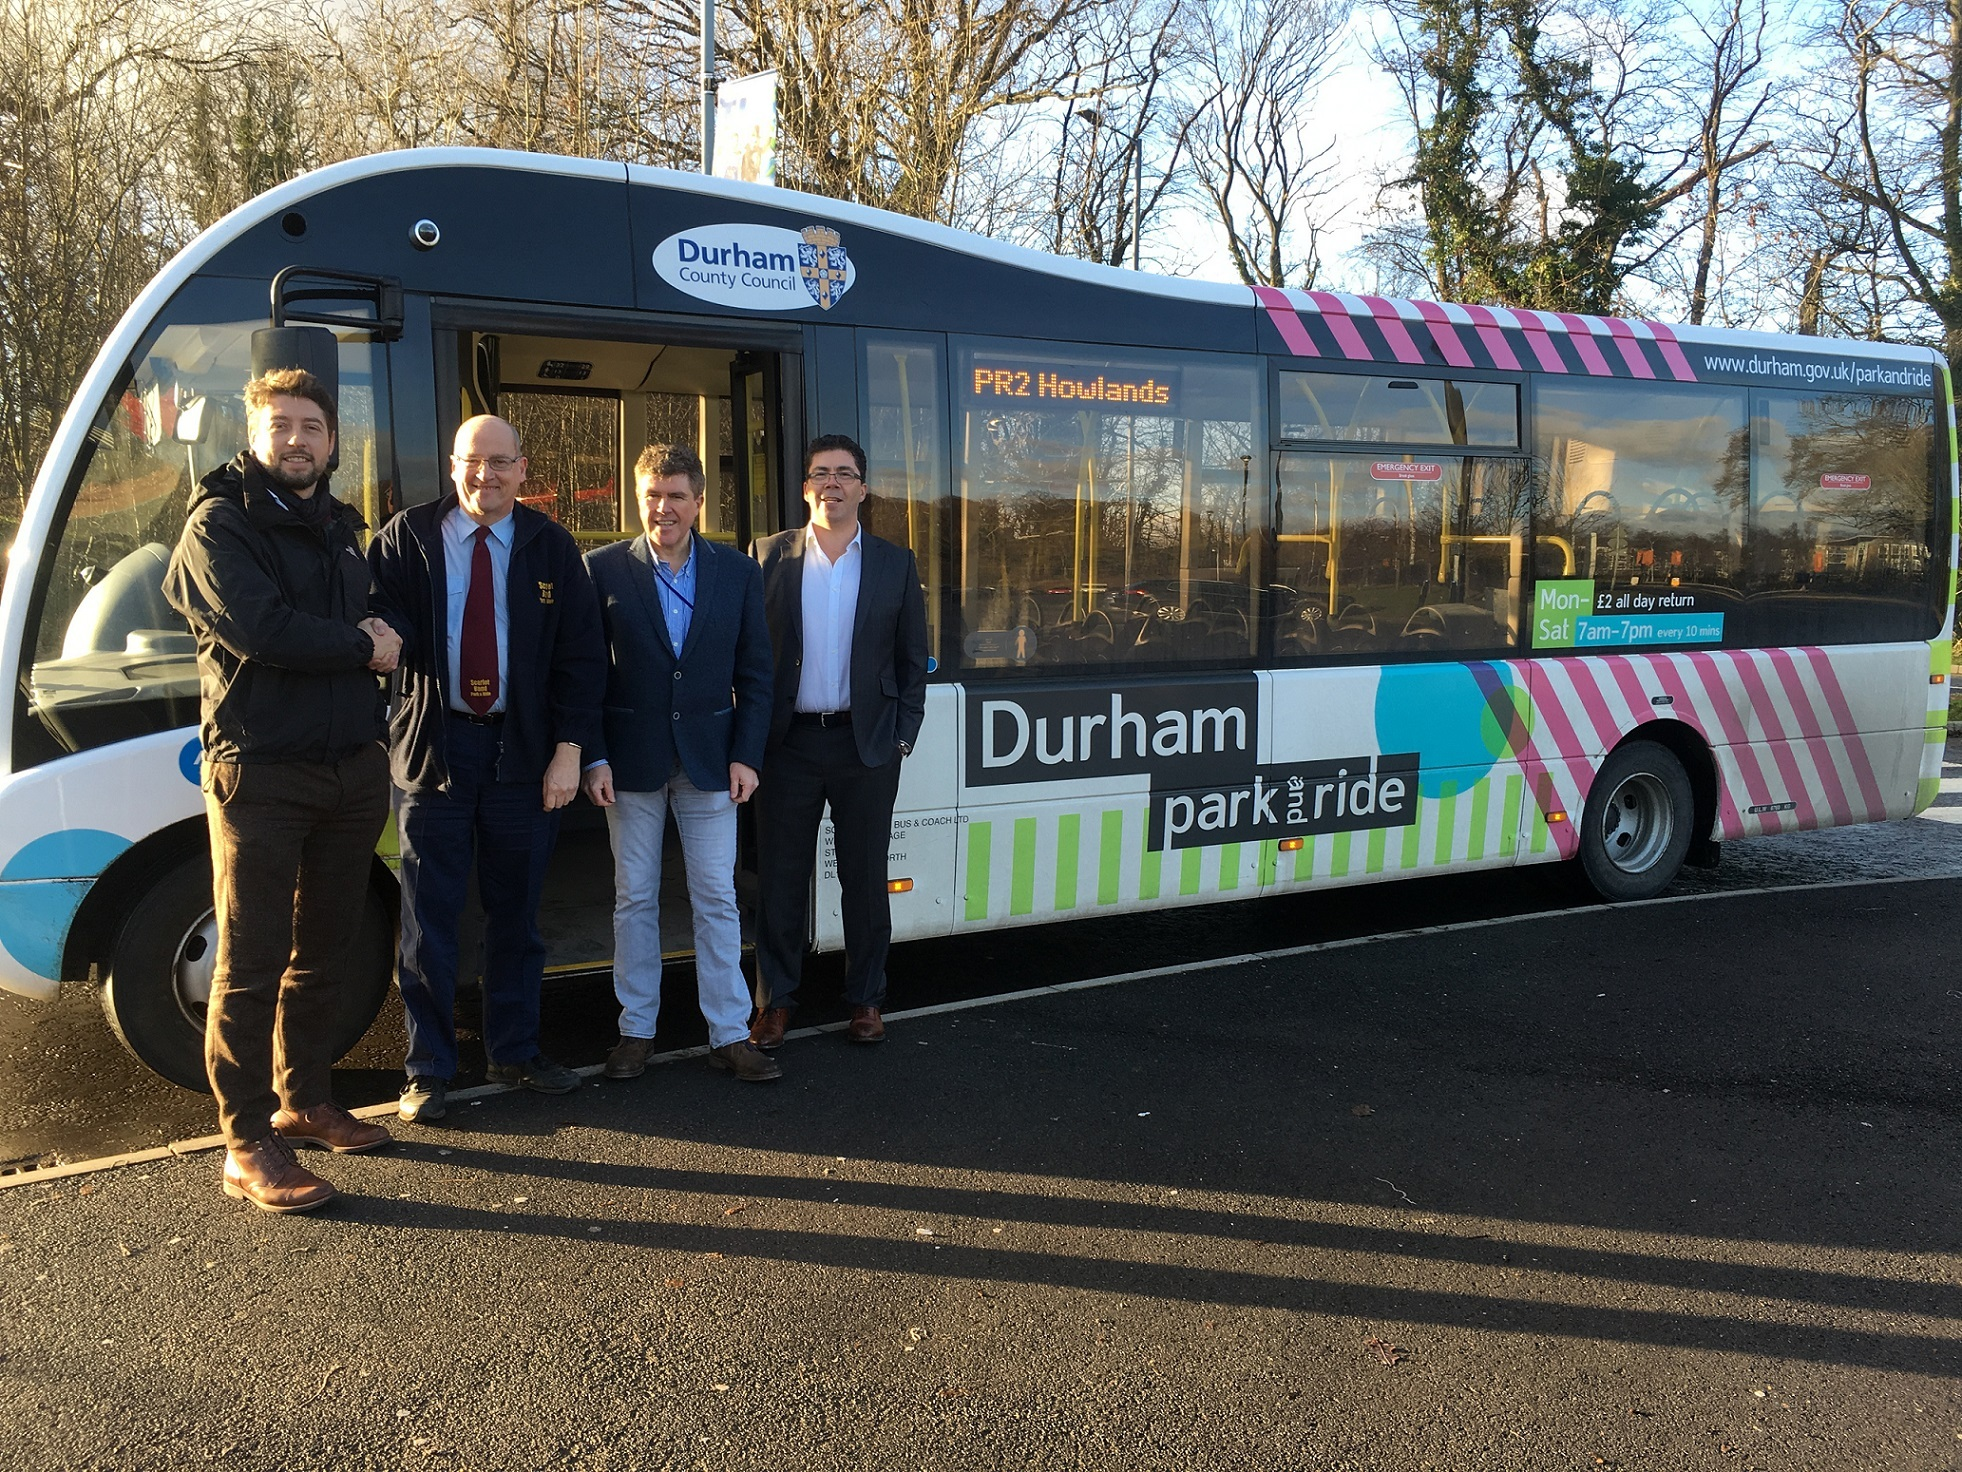 Bus Service For Durham City To Launch This Summer The Northern Echo